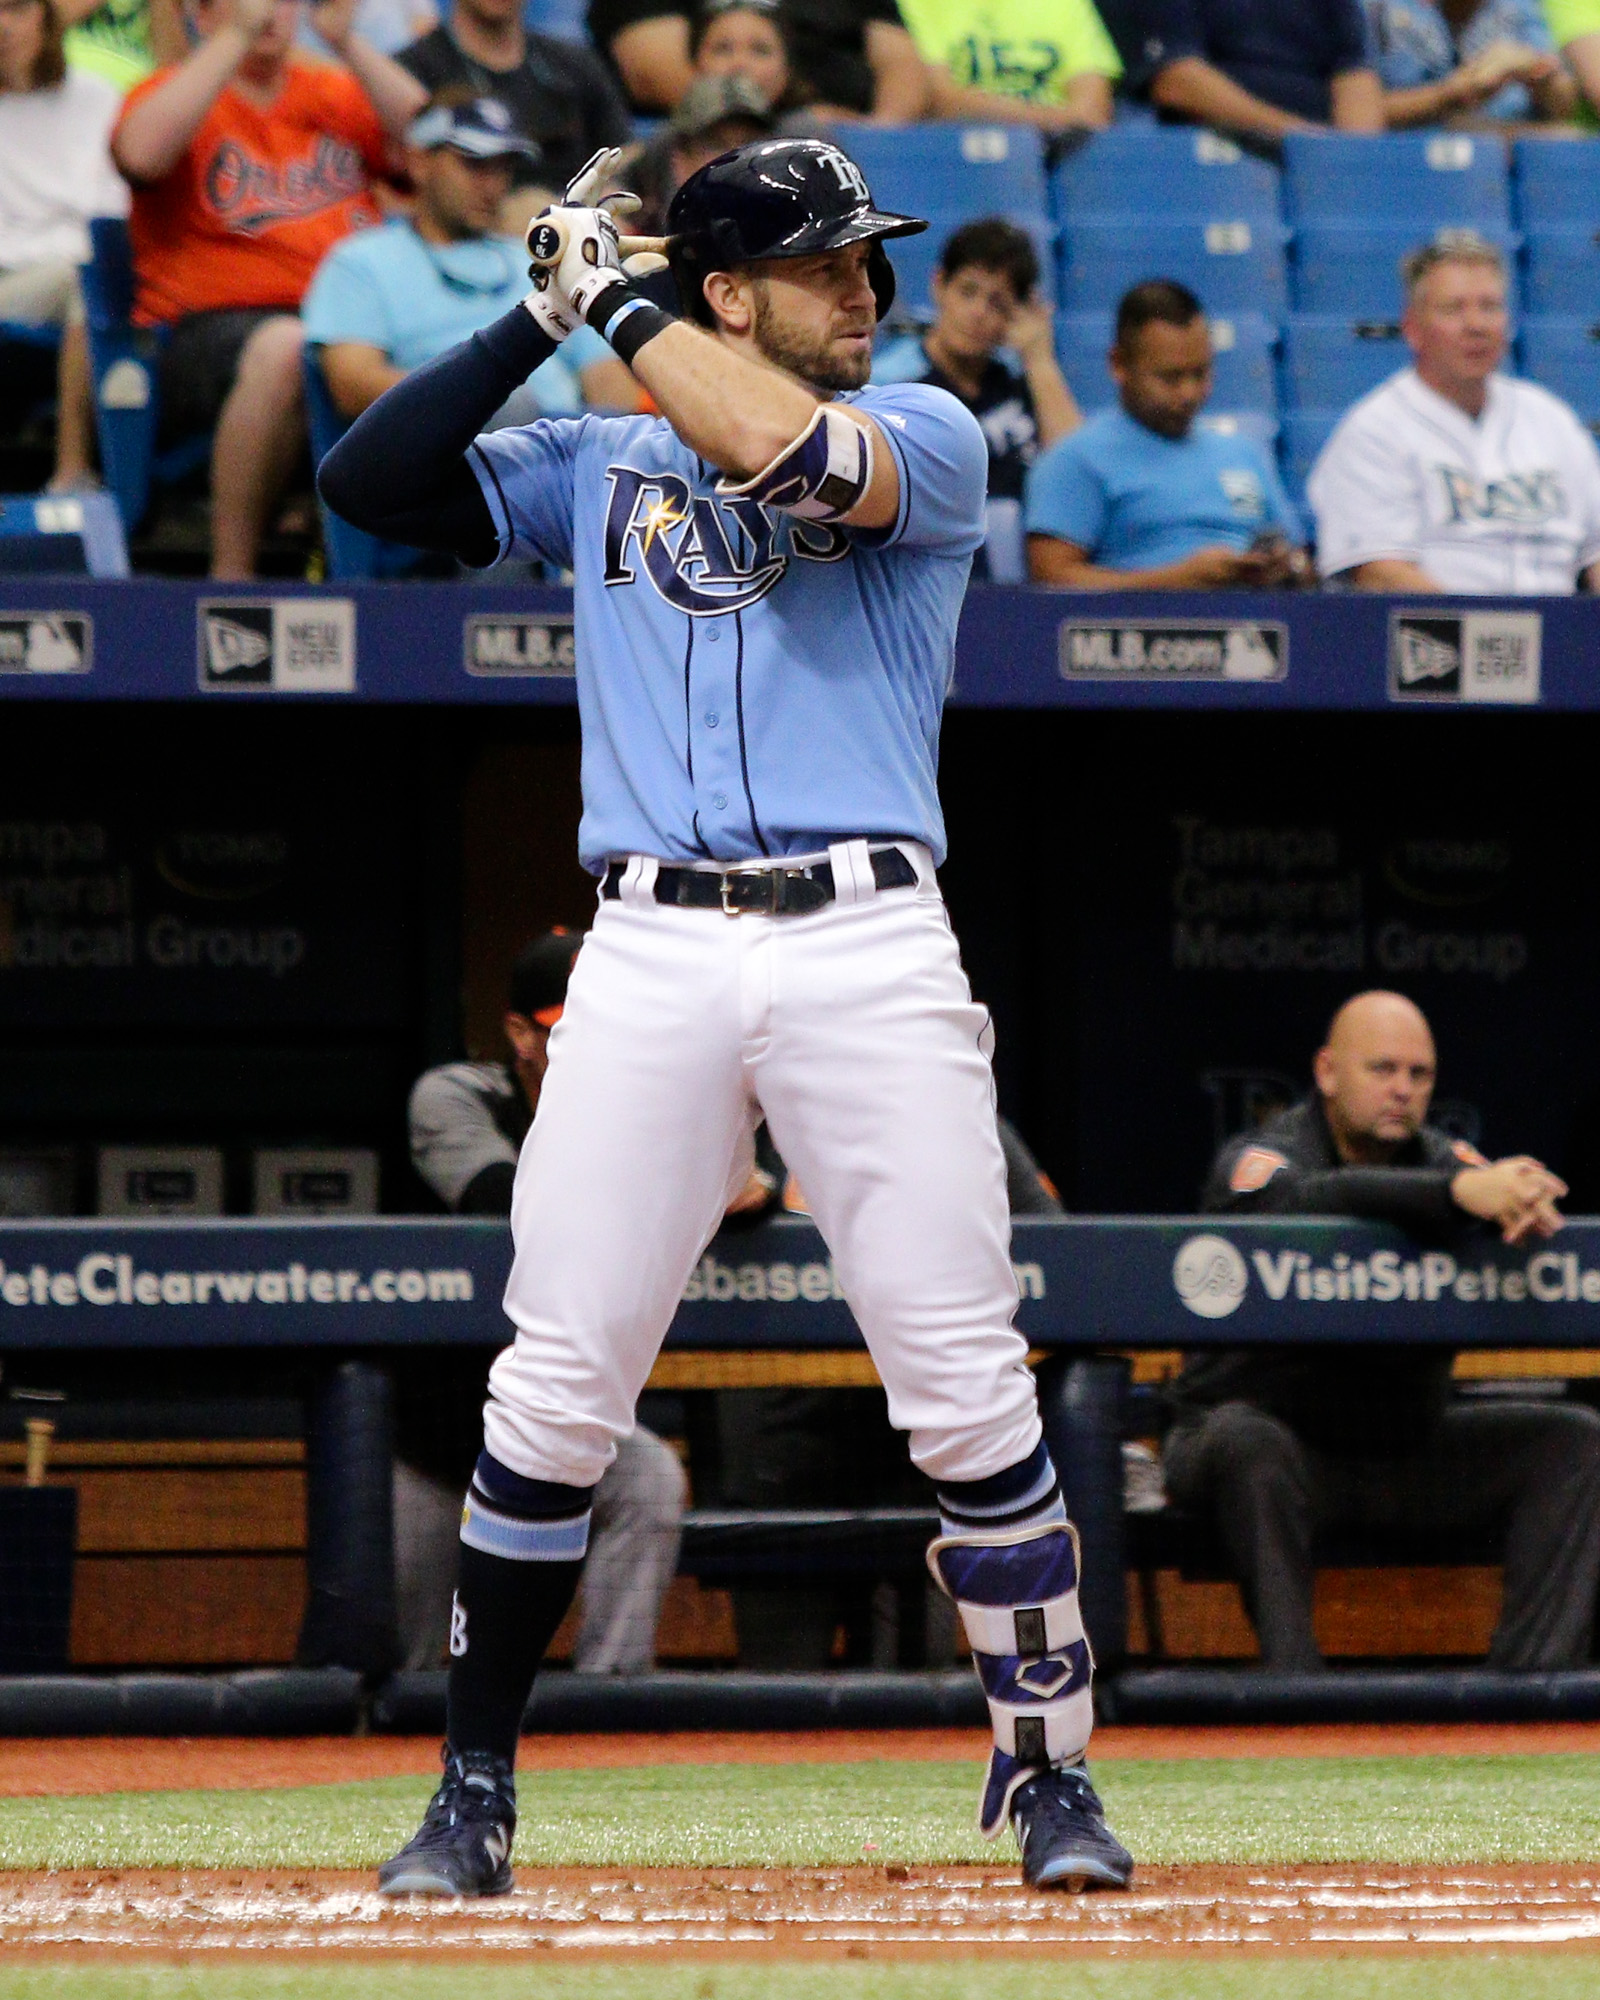 Longoria was disappointed in the Rays' season./ANDREW J. KRAMER